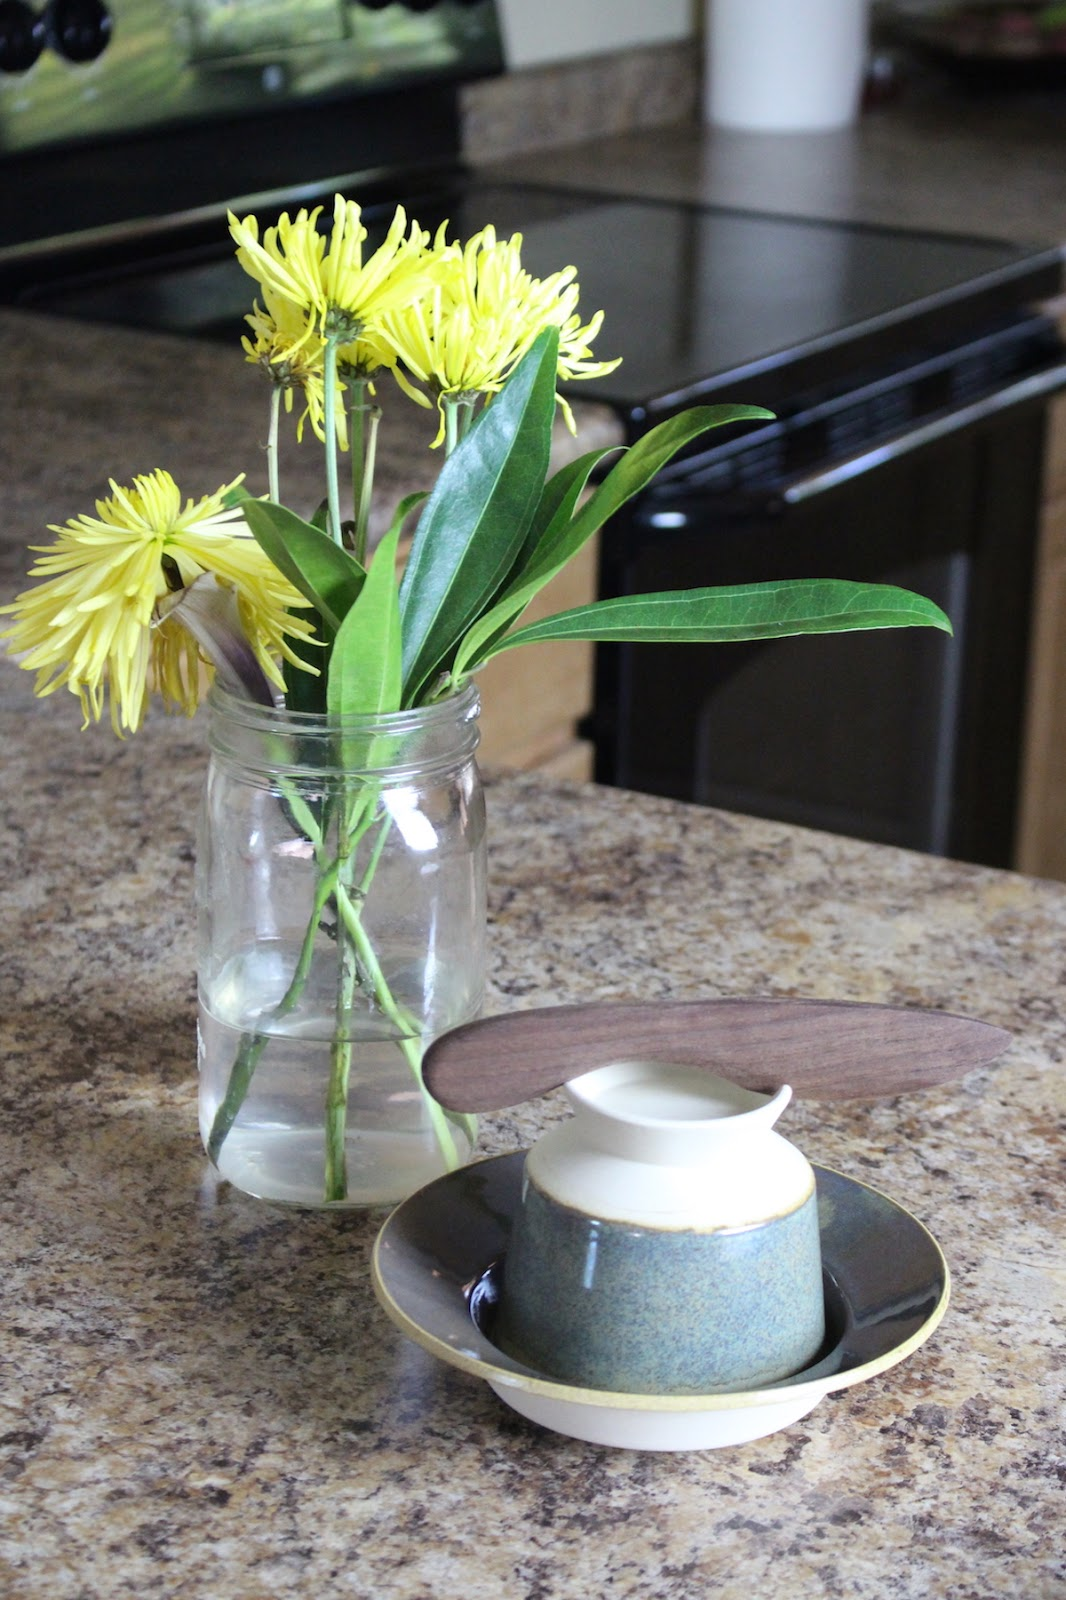 A close-up right side view of the kitchen featuring a unique butter crock from Uncommon Goods and some yellow flowers.